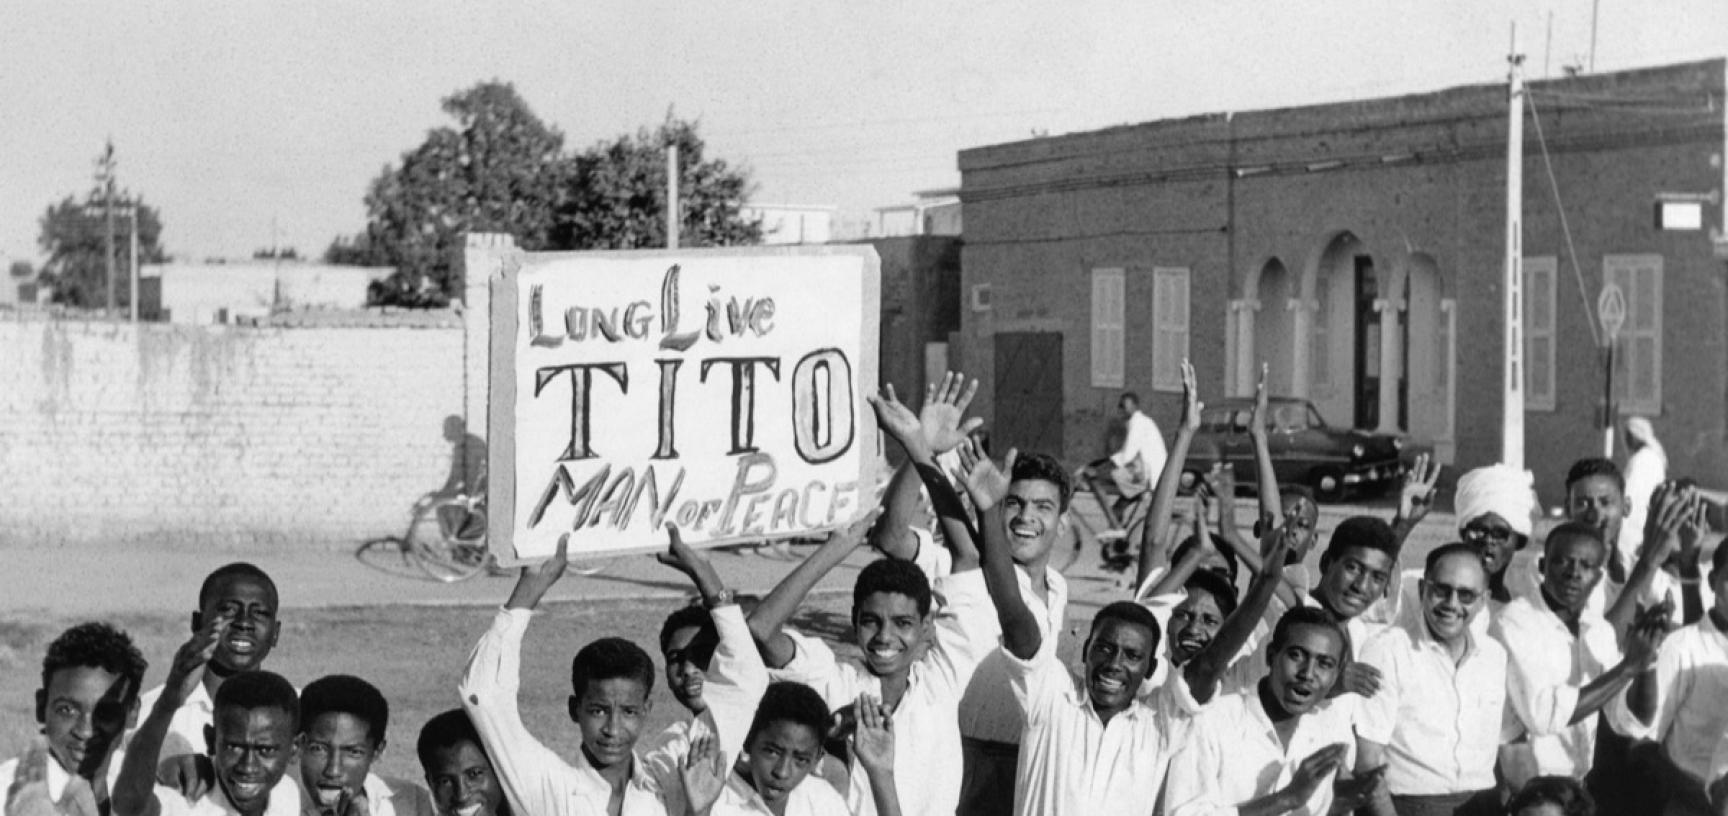 Sudan, 1959. The people gathered to welcome President Tito in Barakat. (Copyright Museum of Yugoslavia, Belgrade)